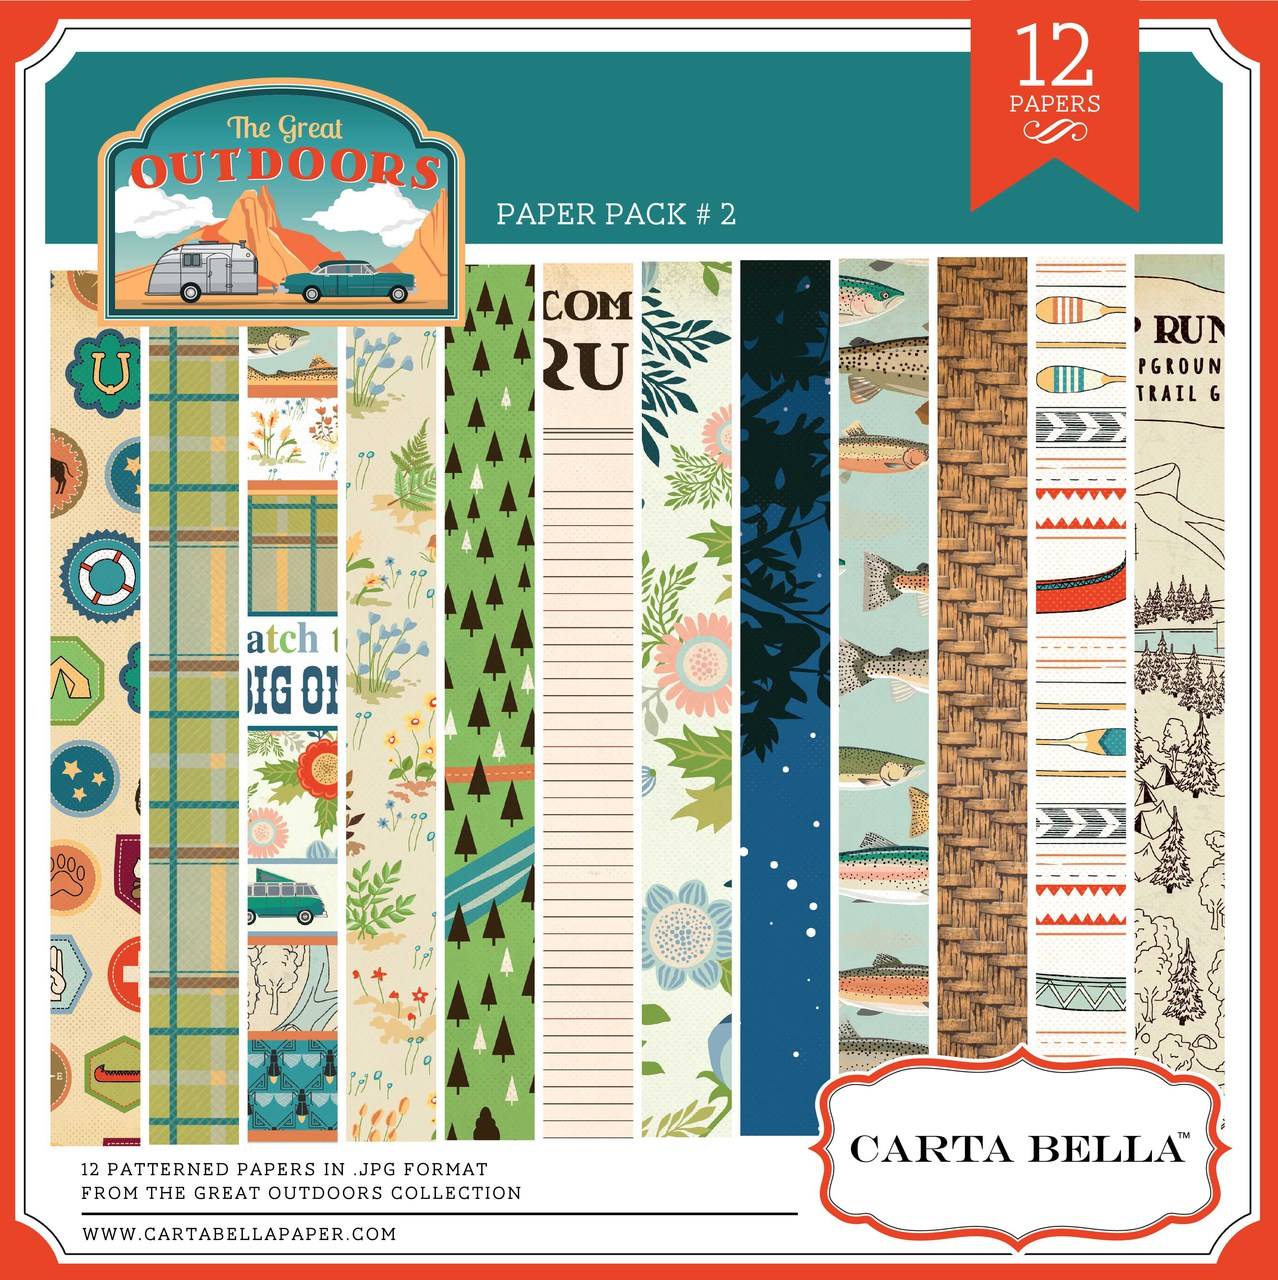 The Great Outdoors Paper Pack #2